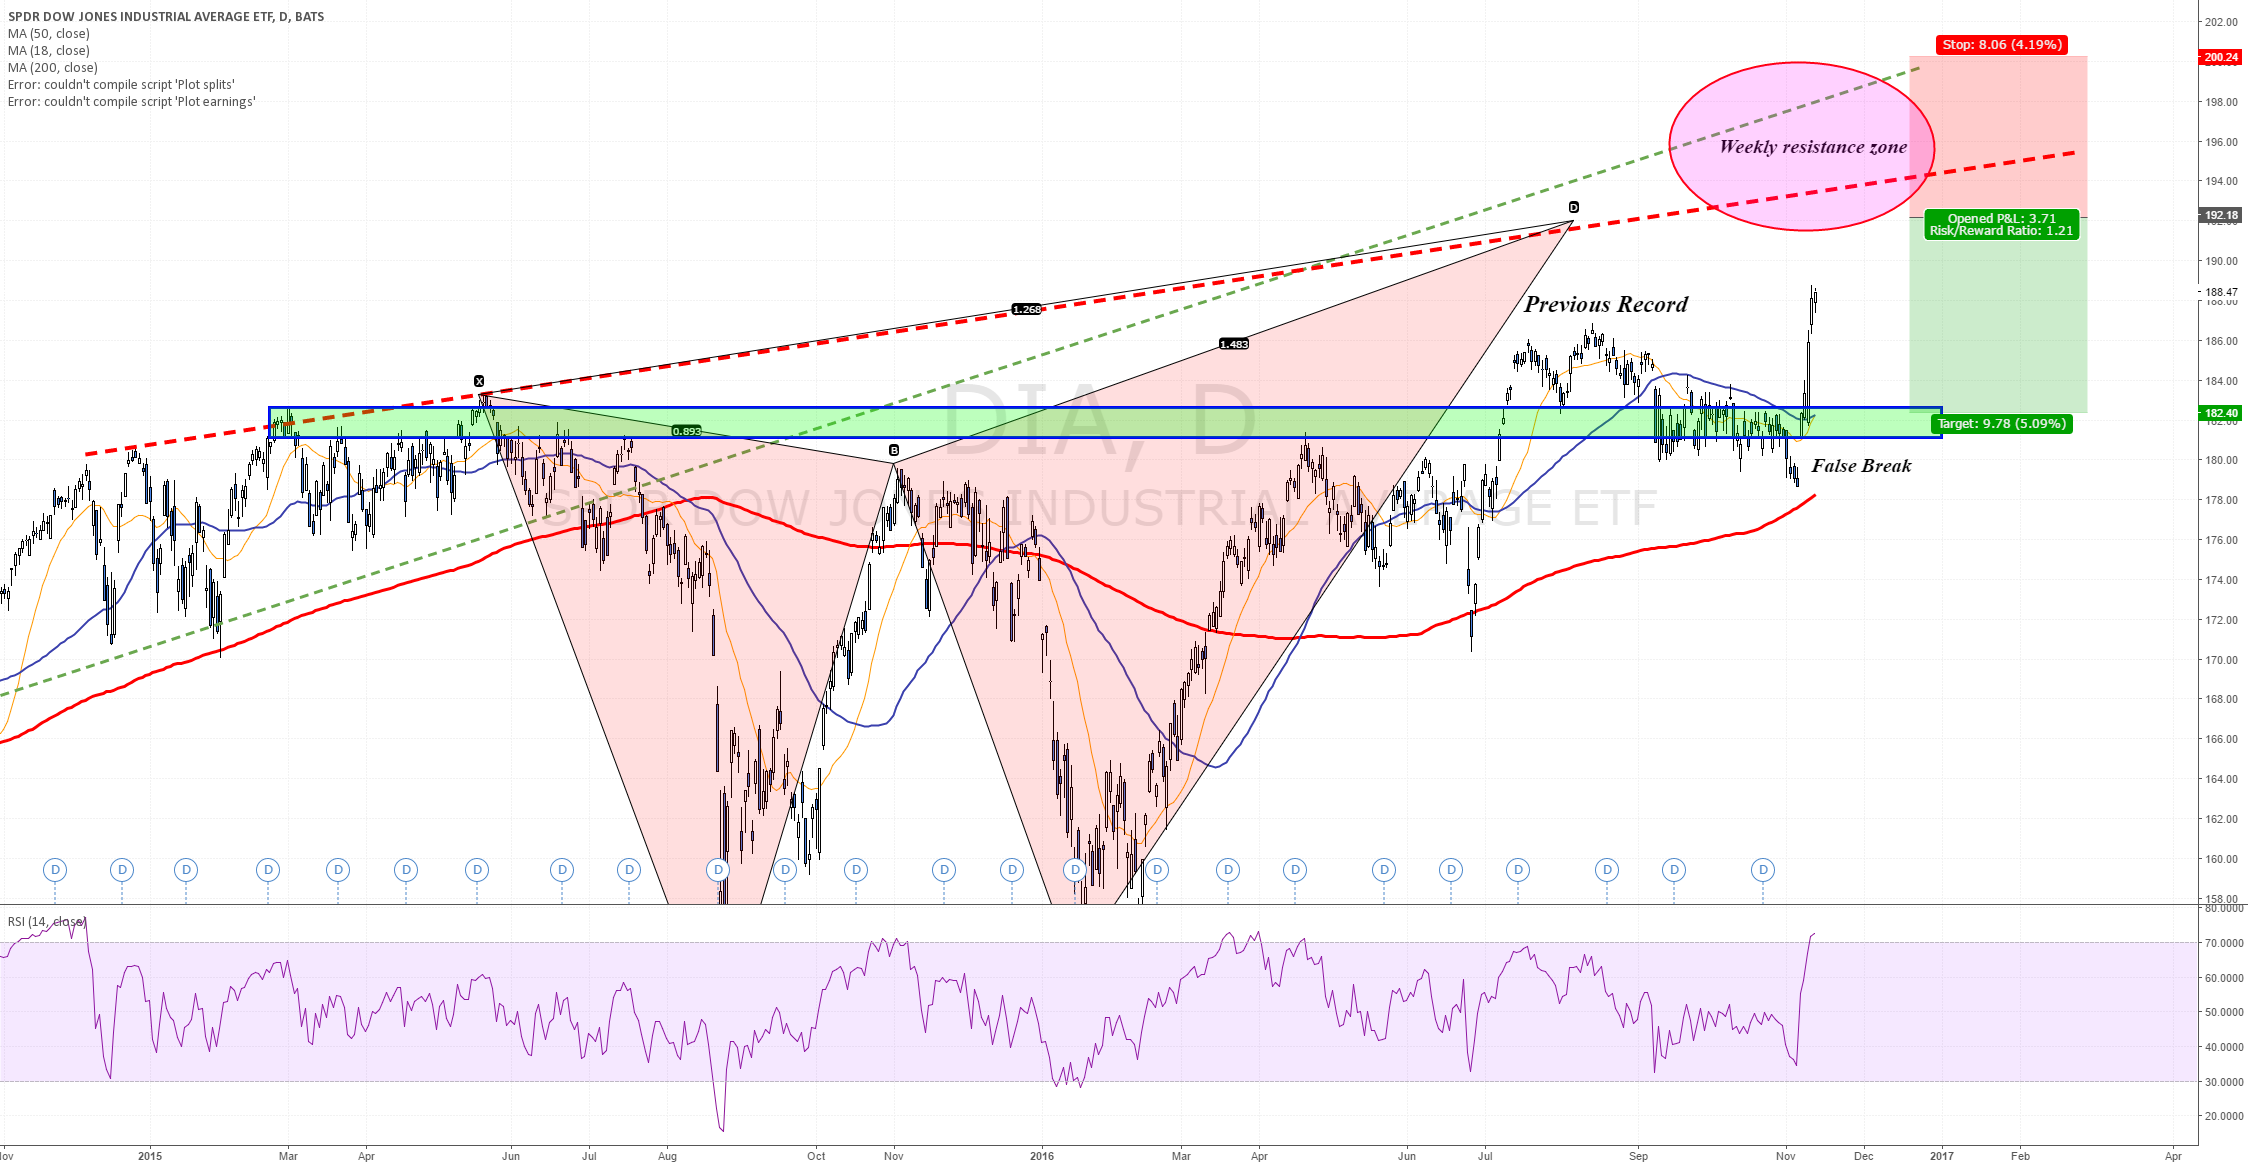 192-200$ the next weekly resistance zone for the Dow